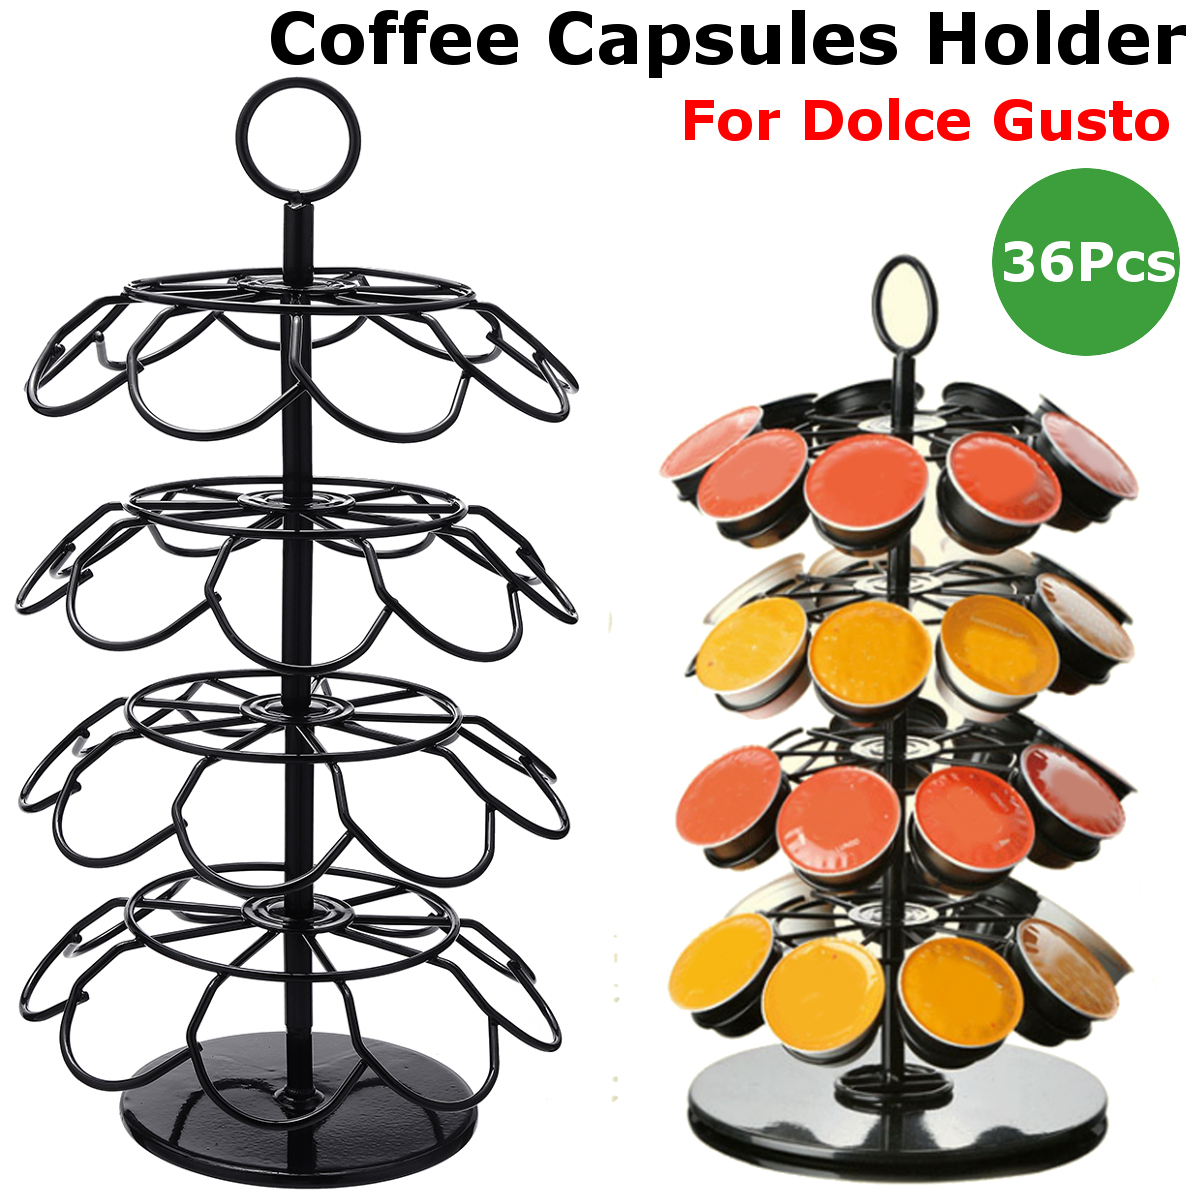 36Pcs Coffee Capsule Cup Holder Stand Capsule Storage Dispenser Rack For Dolce Gusto Home Kitchen Coffee Maker Appliance Part sobuy frg280 sch coffee pod capsule teabags drawer box holder cabinet coffee machine stand